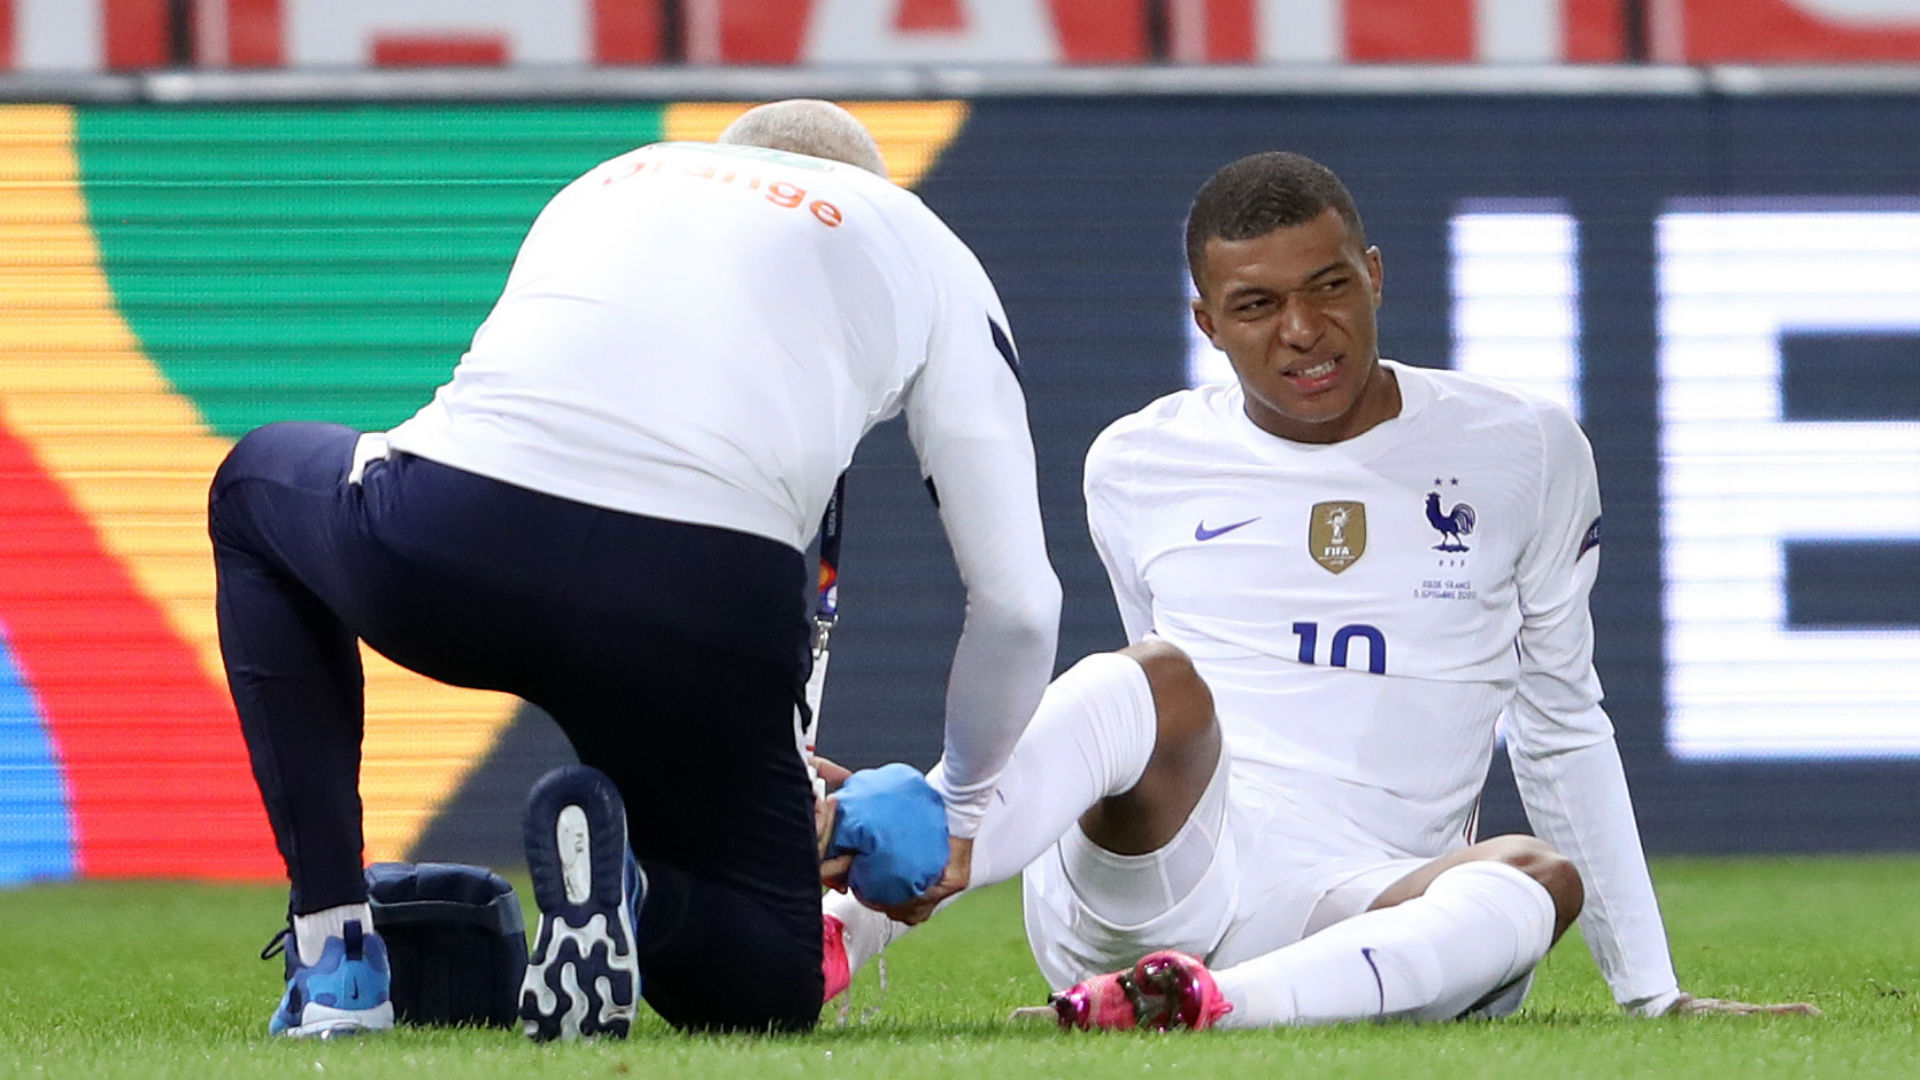 Mbappe admits ankle 'hurts a bit' after knock in France's win over Sweden